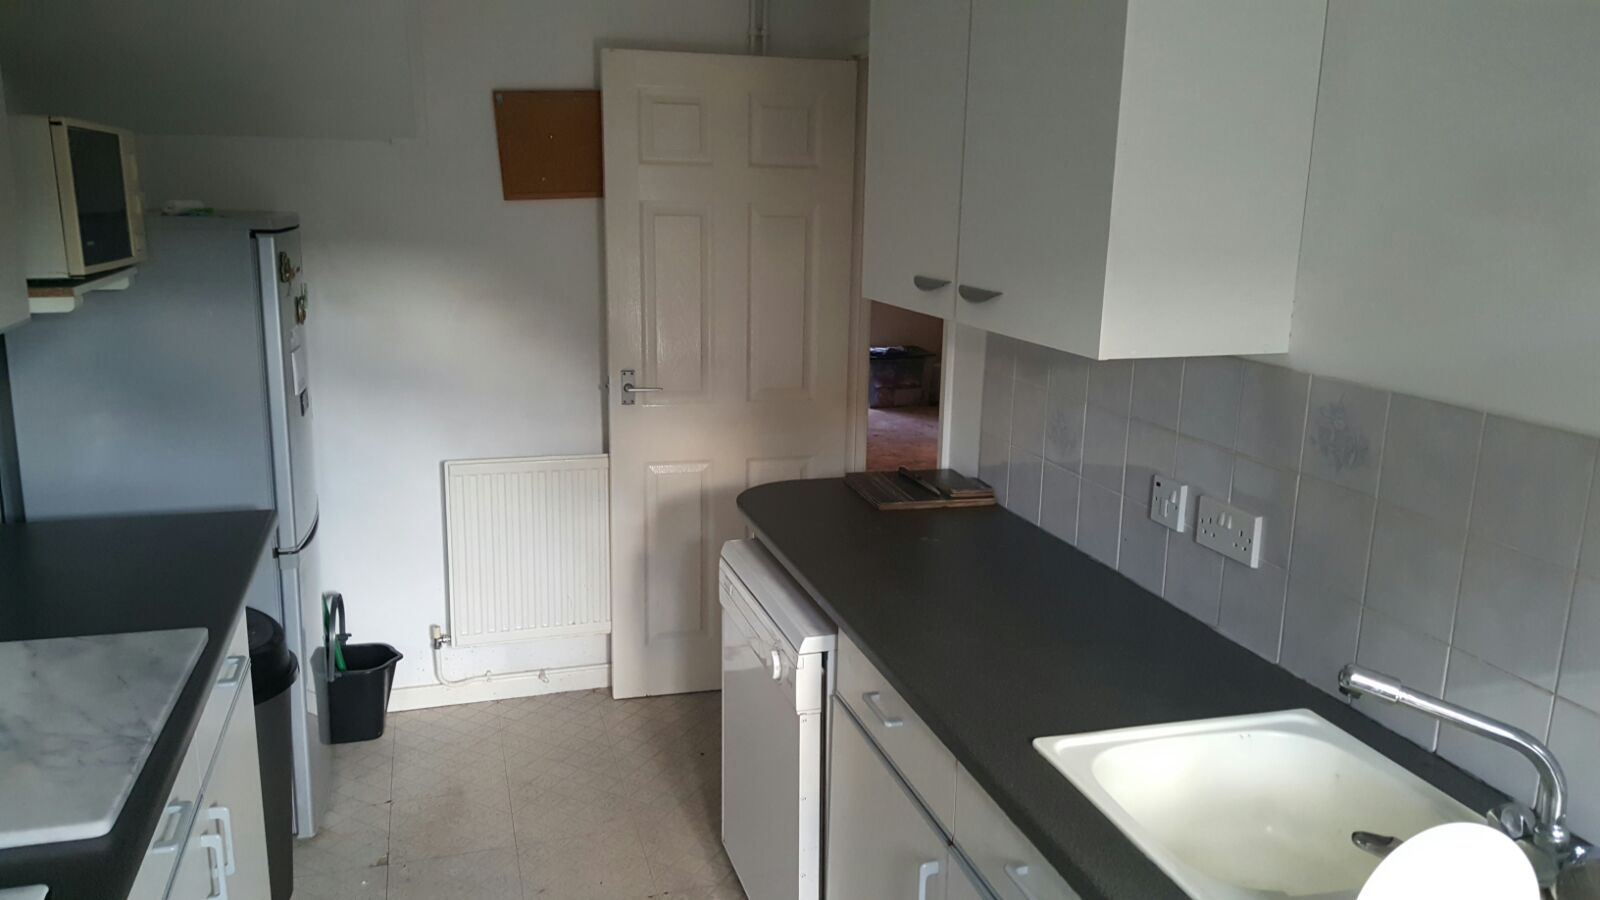 2 rooms in Birmingham, Birmingham, B16 8DY RoomsLocal image